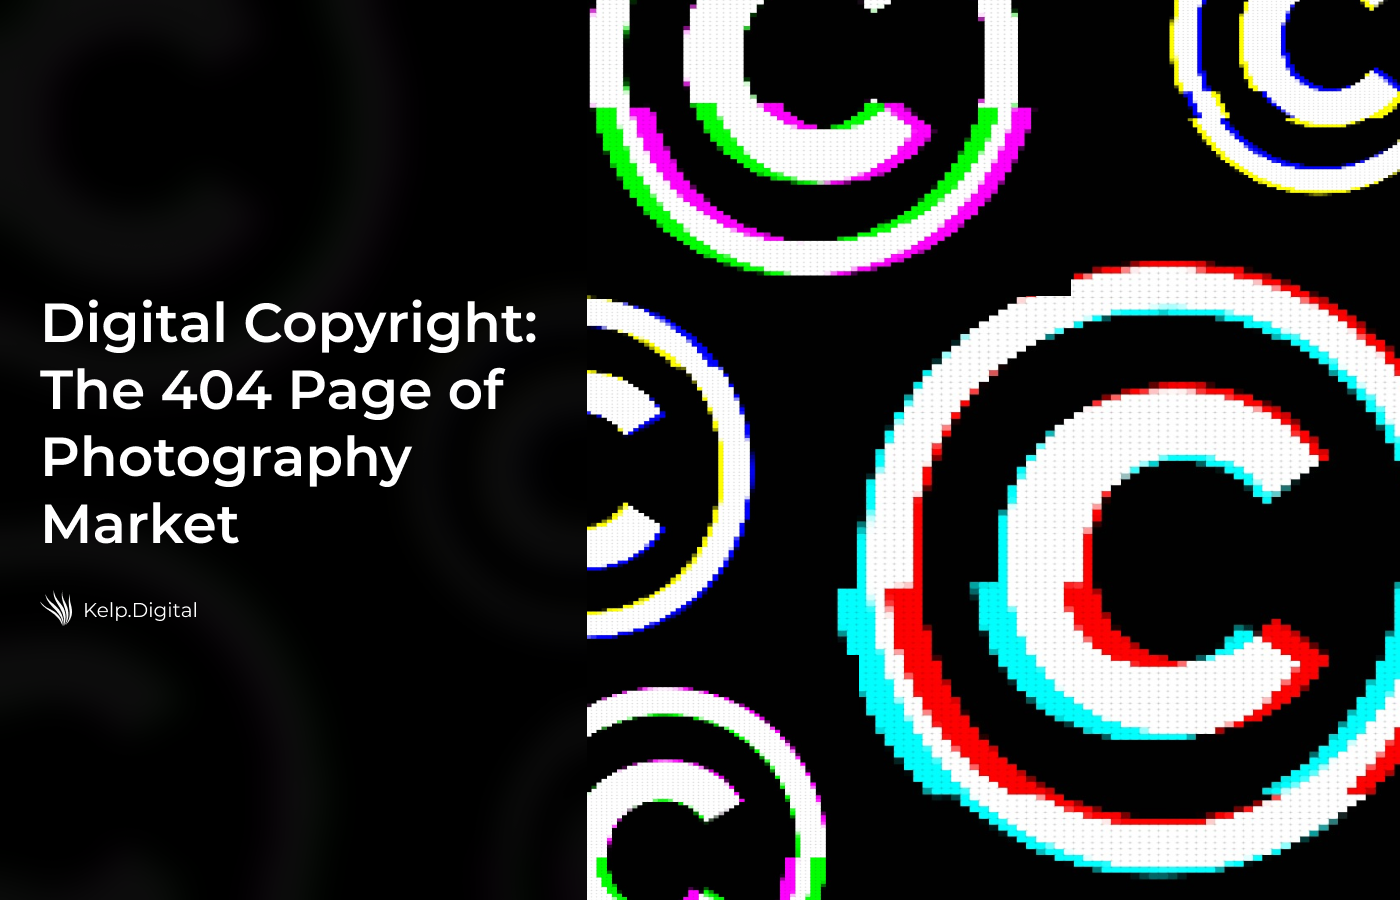 Digital Copyright: The 404 Page of Photography Market